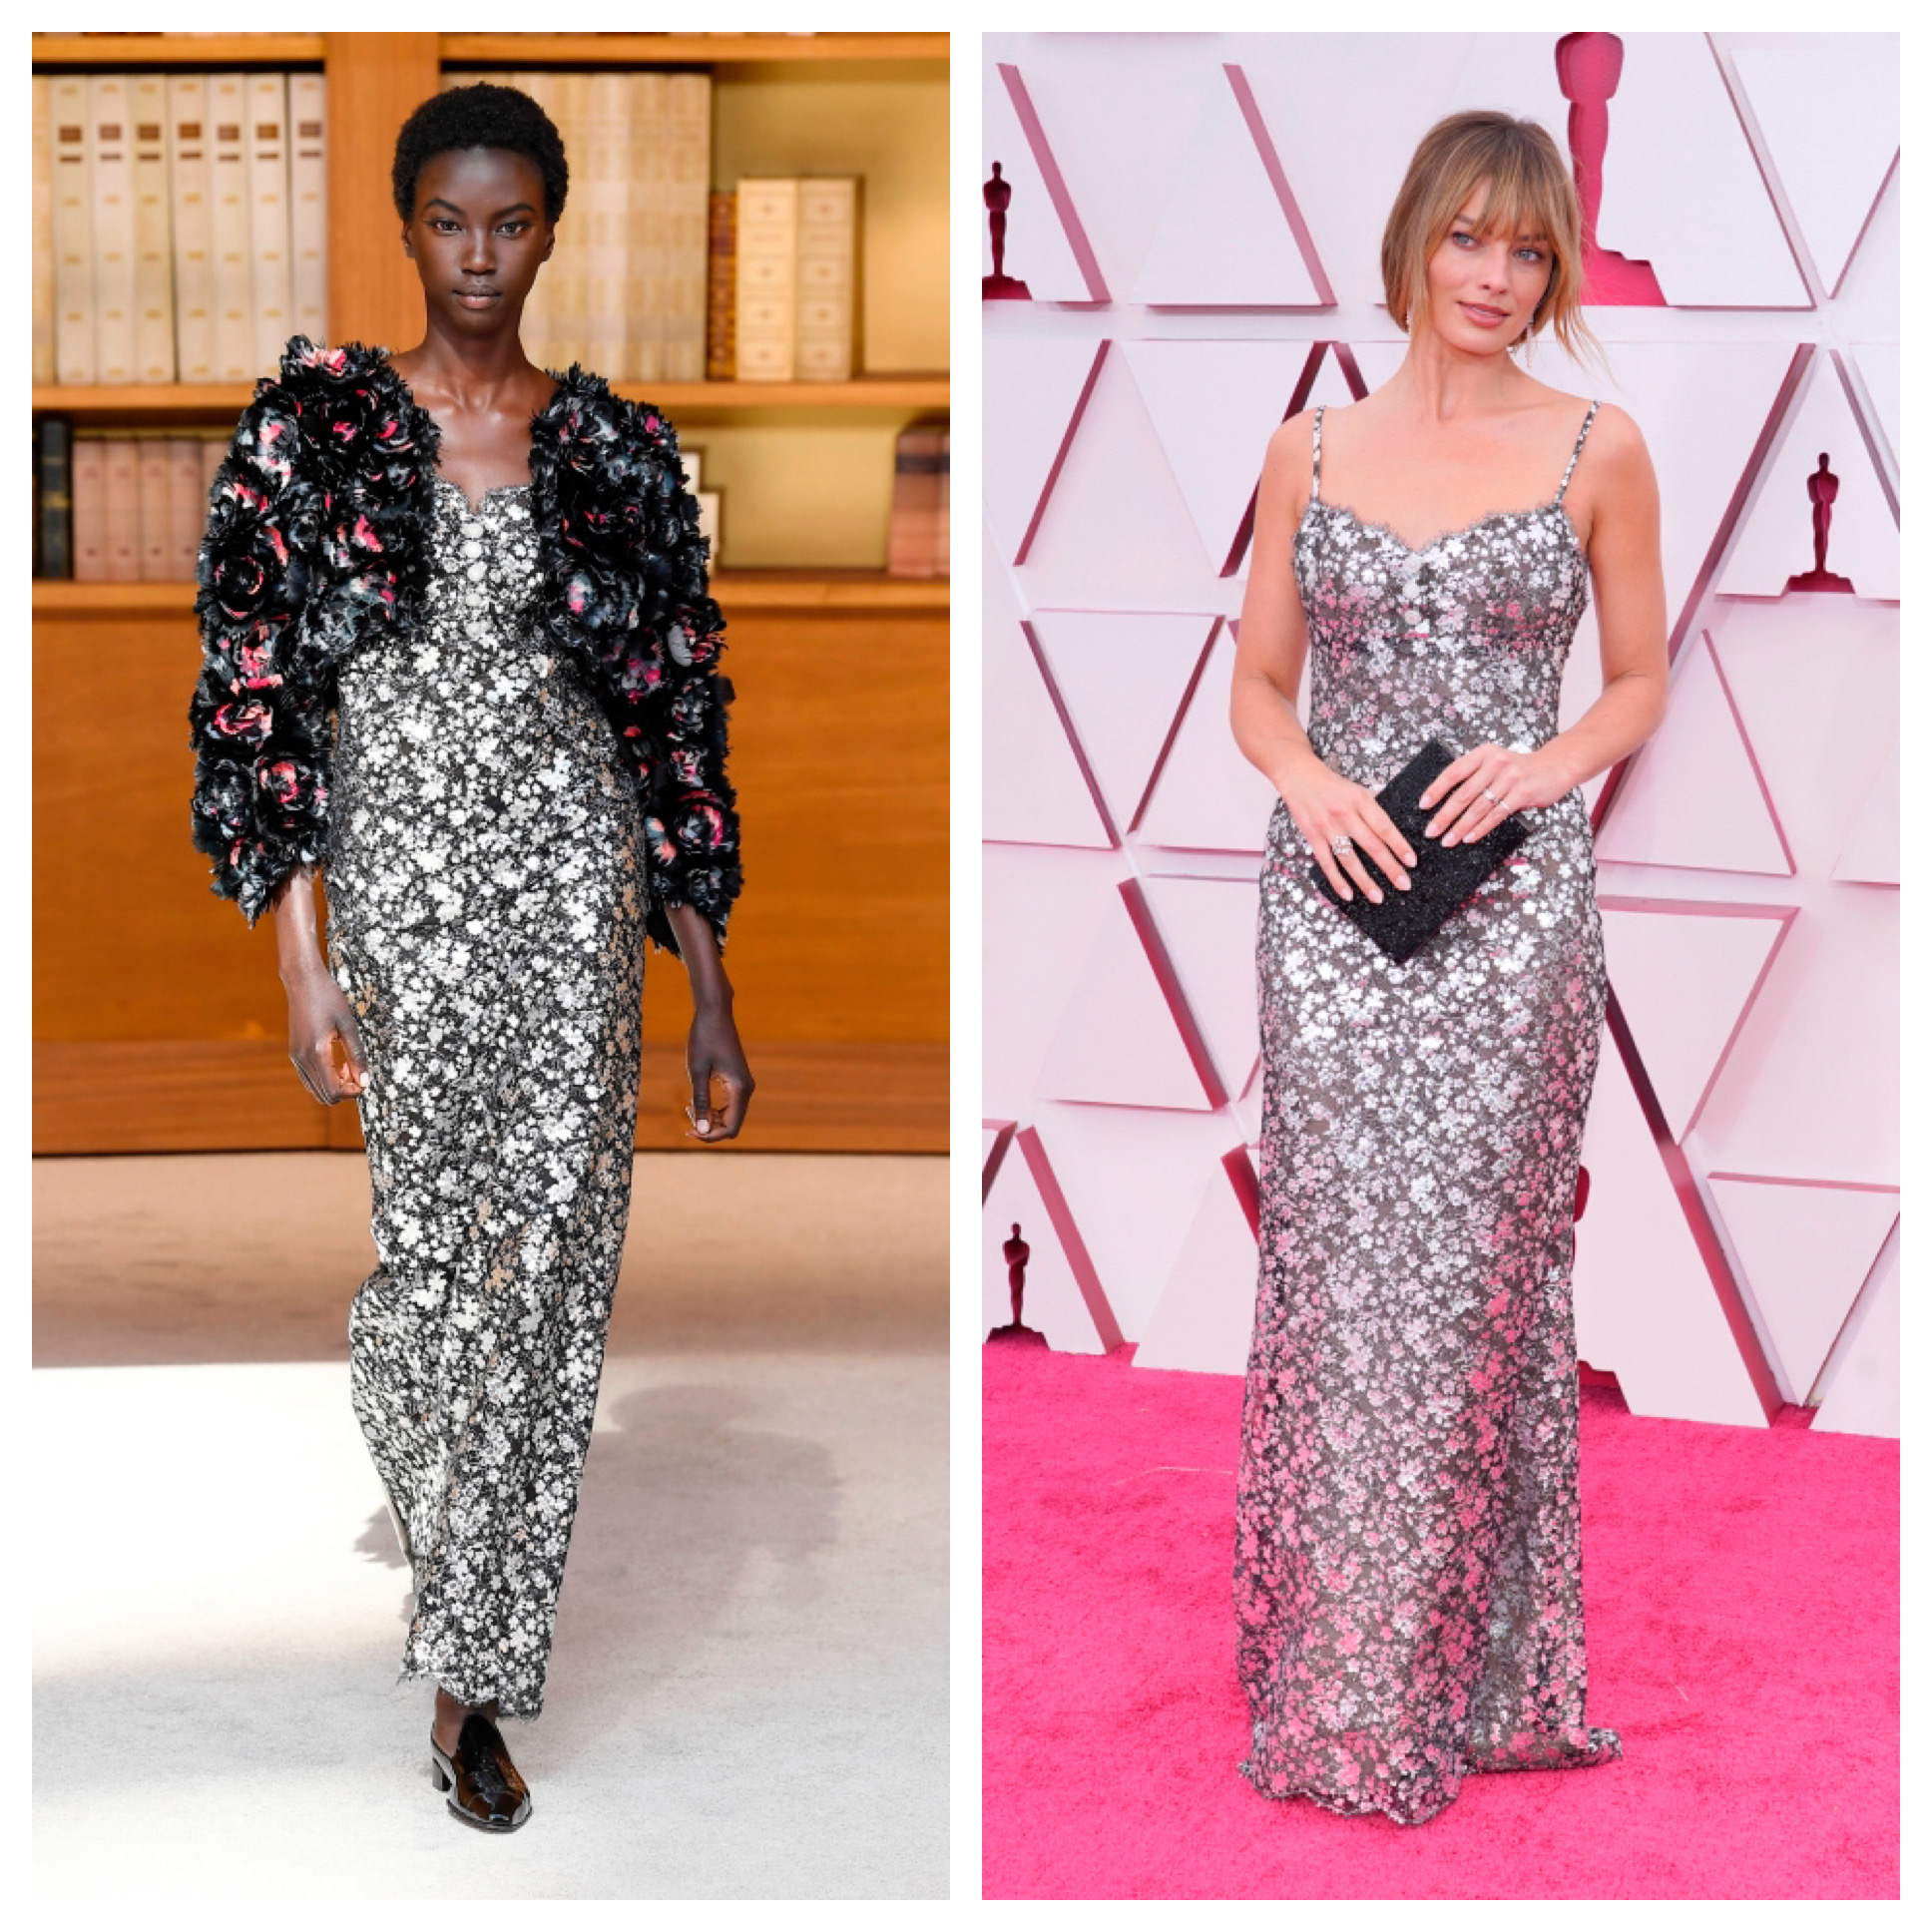 Oscars 2021 Fashion: Red Carpet Looks from the Runway